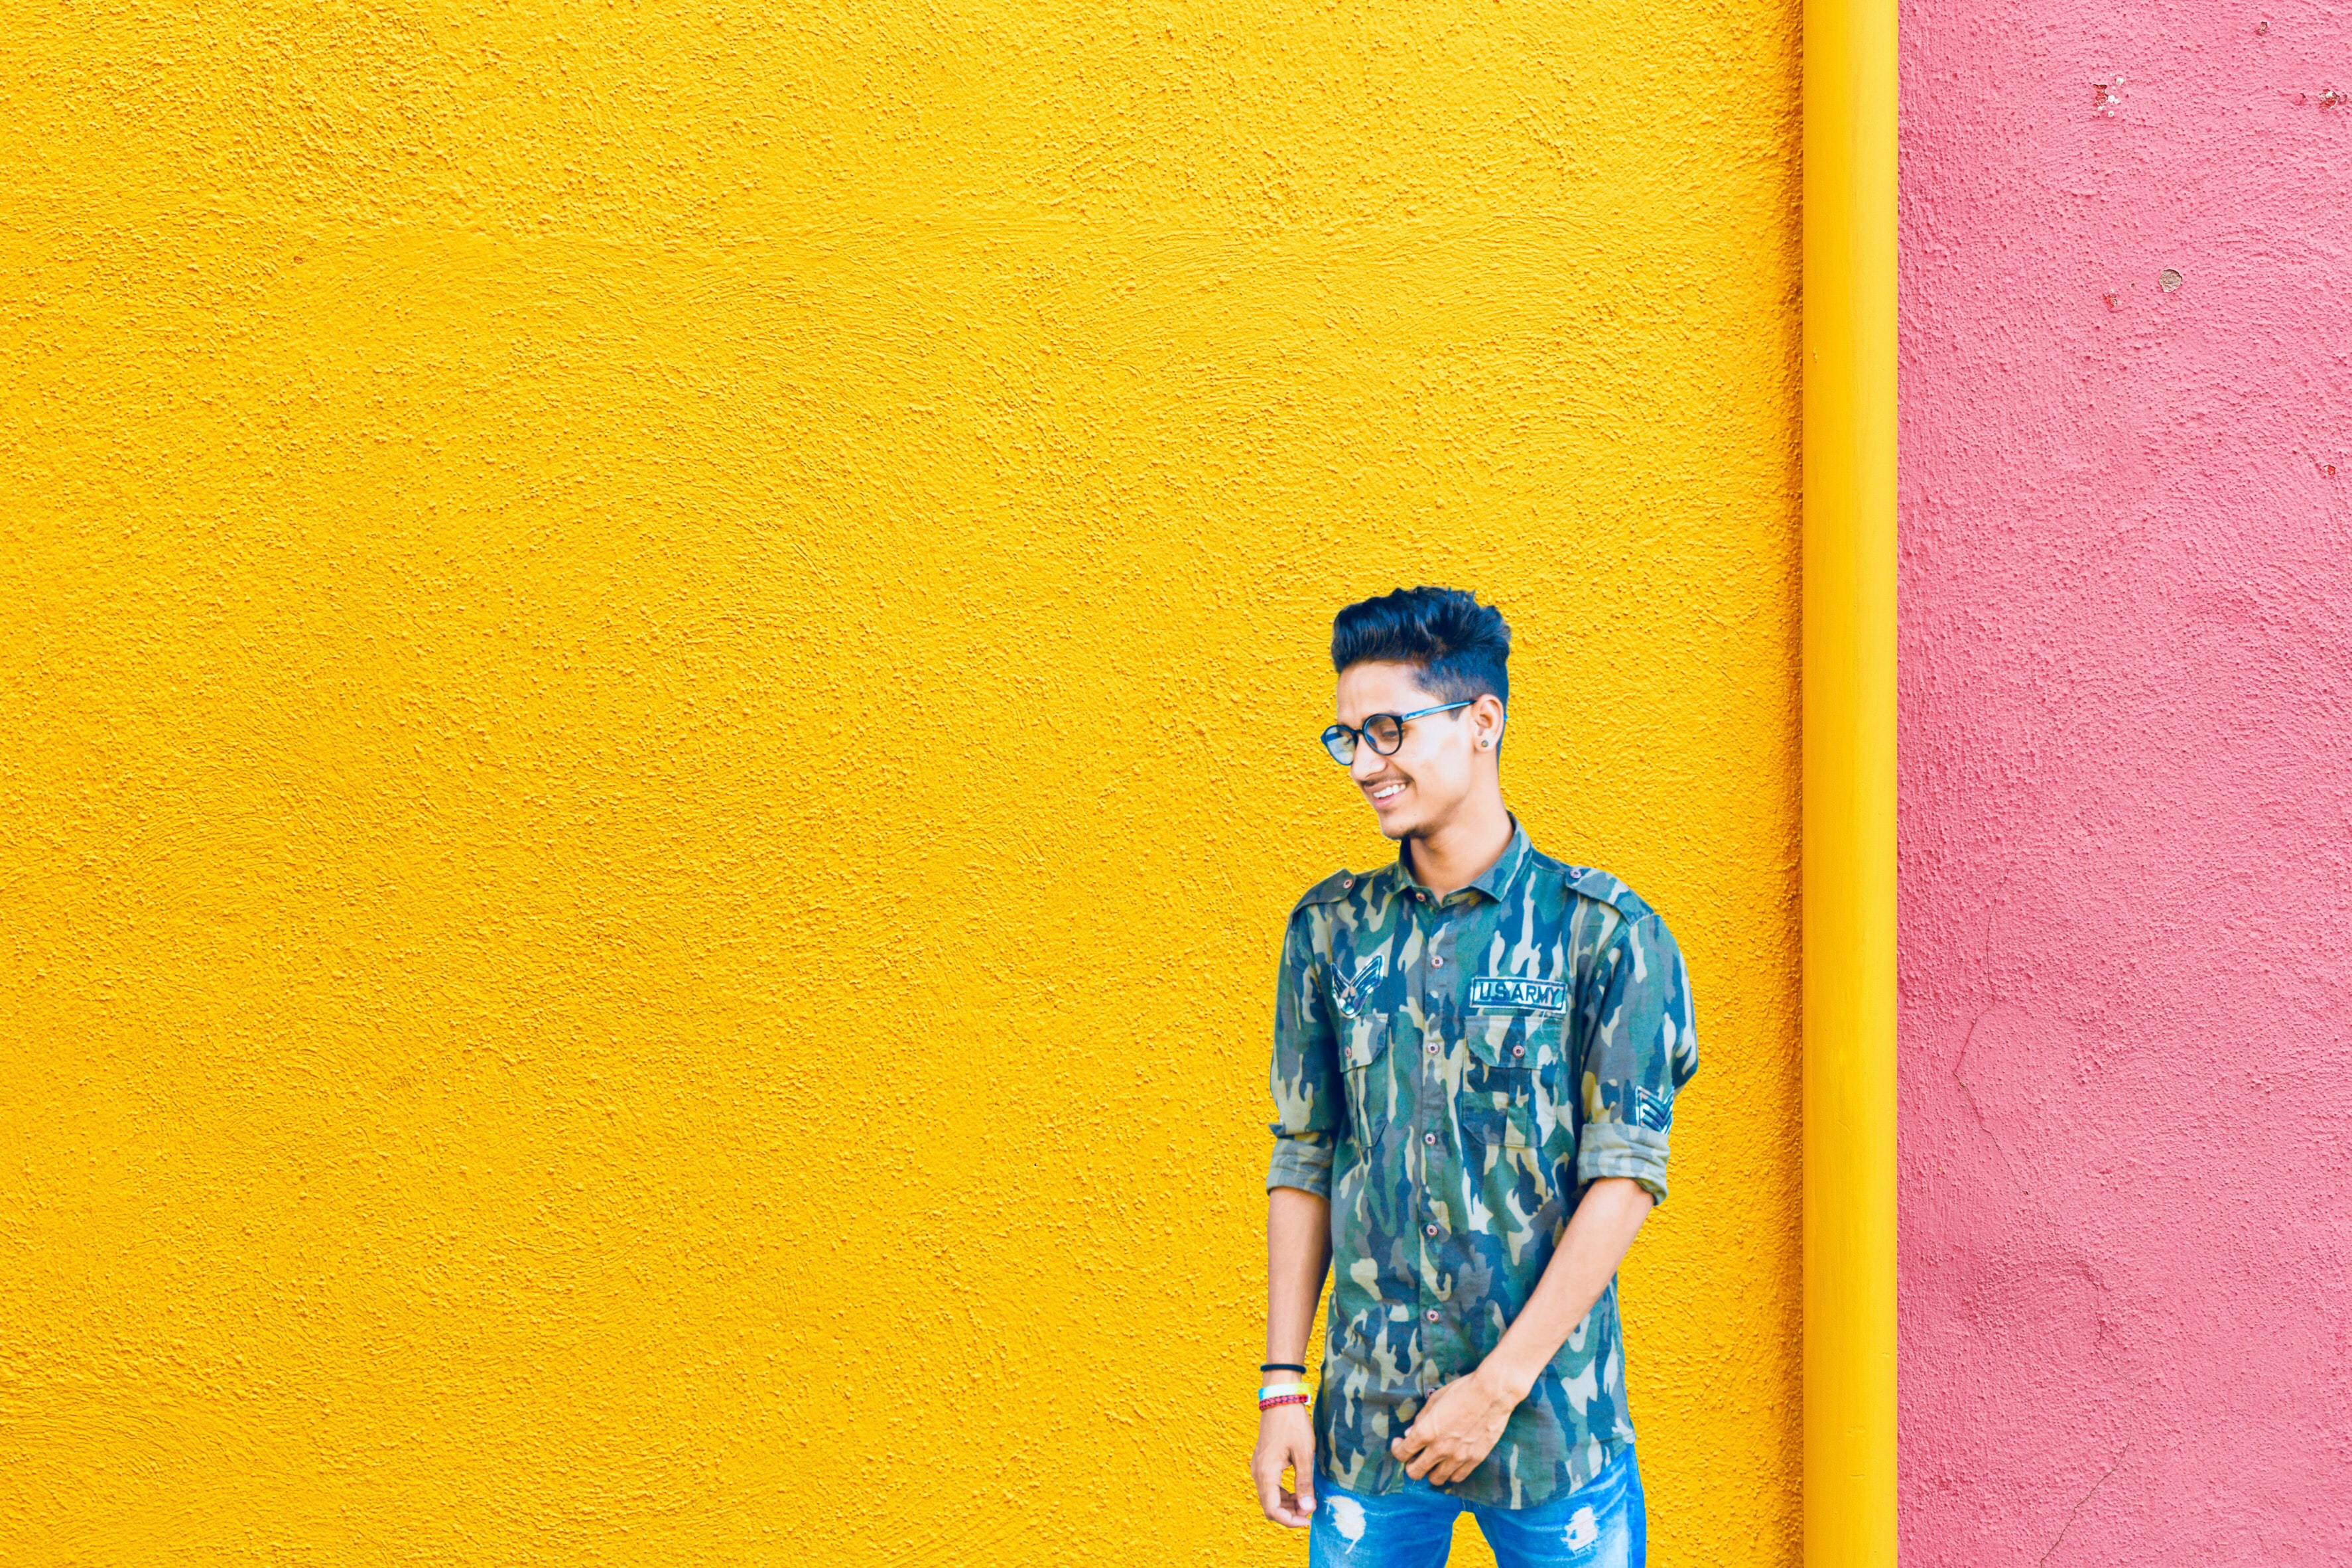 smiling man standing near yellow and pink wall